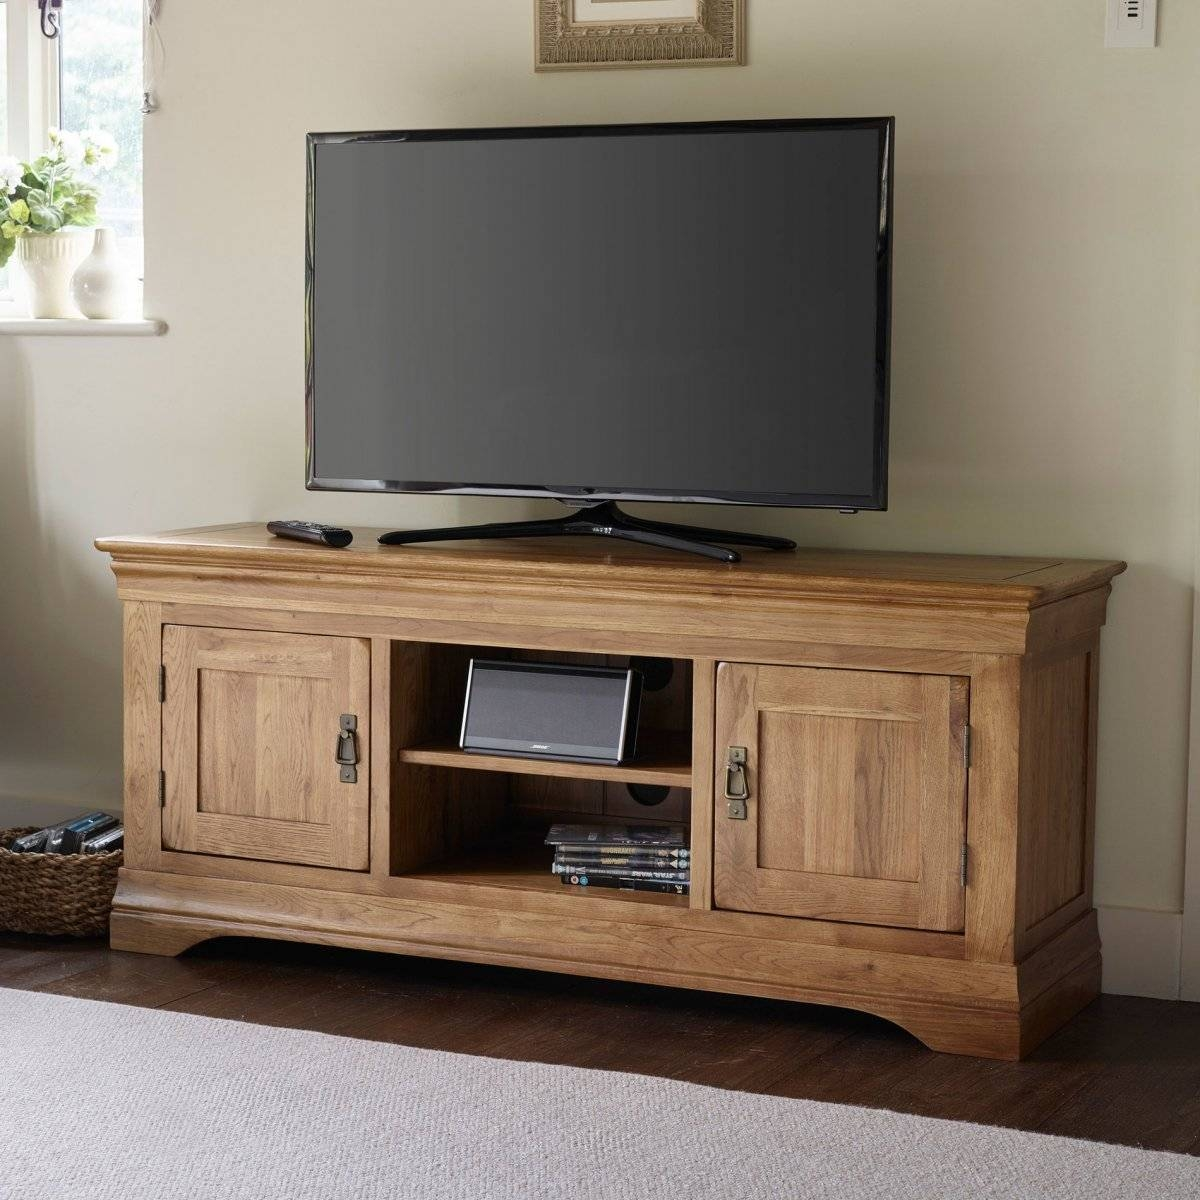 French Farmhouse Tv Cabinet In Solid Oak | Oak Furniture Land for French Tv Cabinets (Image 8 of 15)